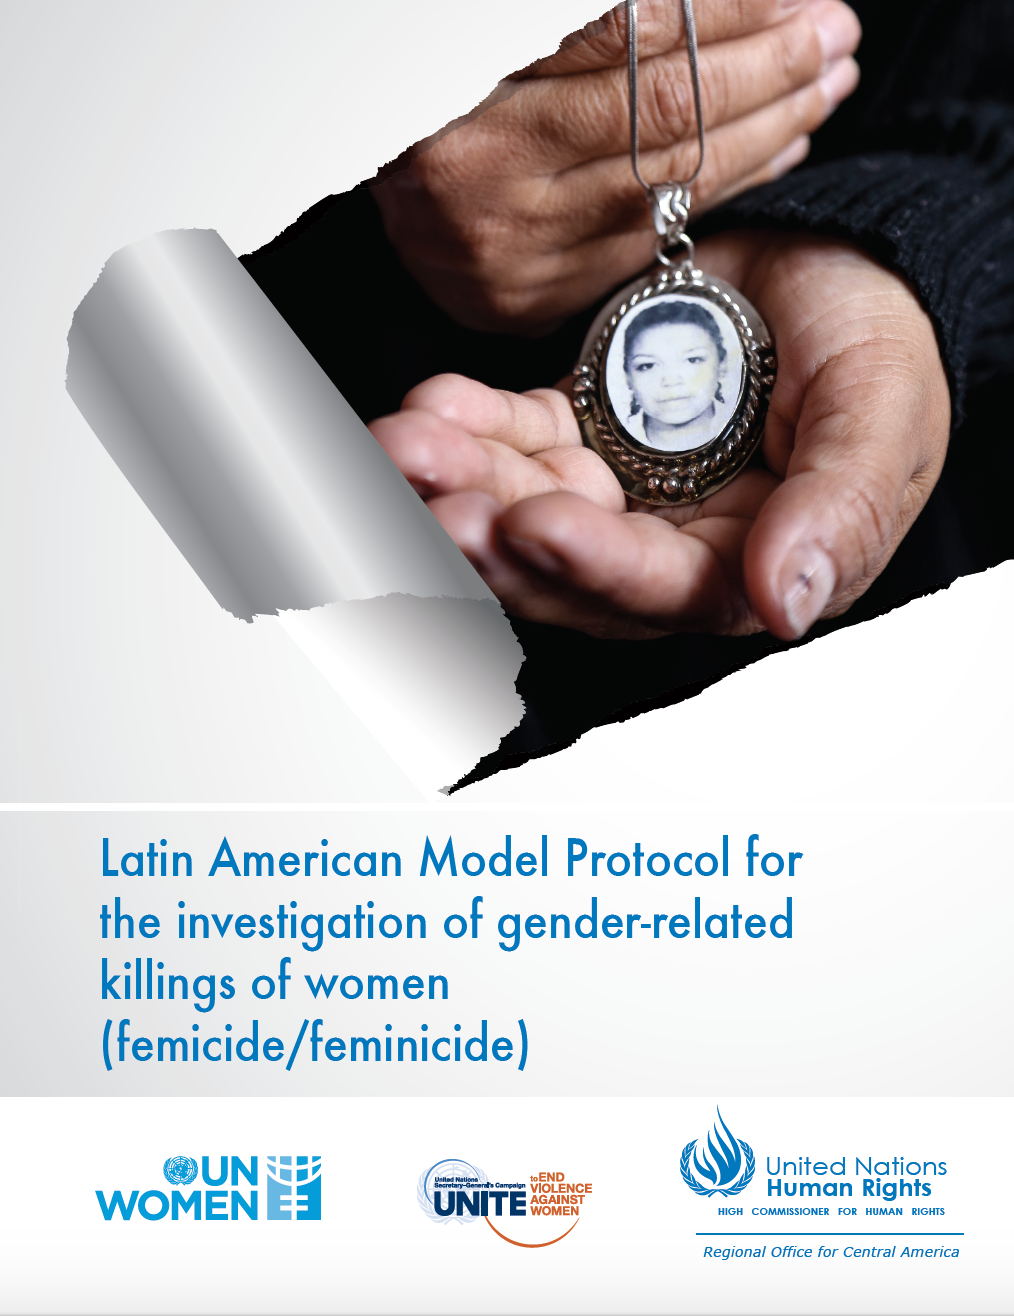 Latin American Model Protocol for the investigation of gender-related killings of women (femicide/feminicide)